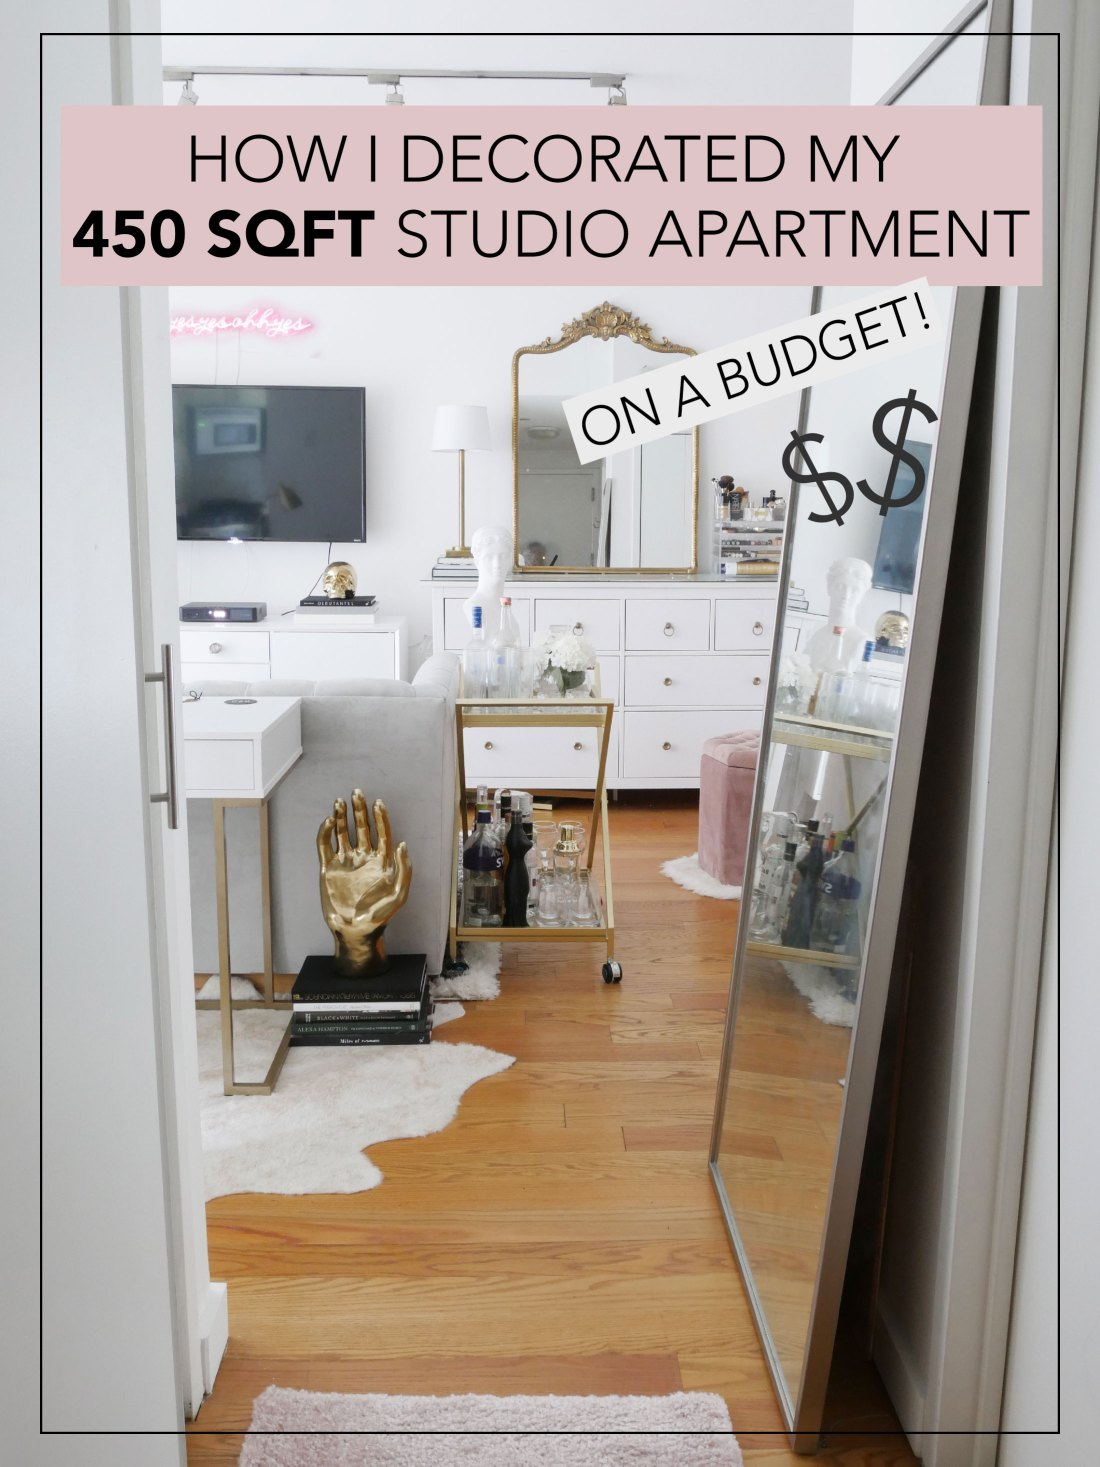 My 450 SQFT Studio Apartment Reveal - City Chic Decor